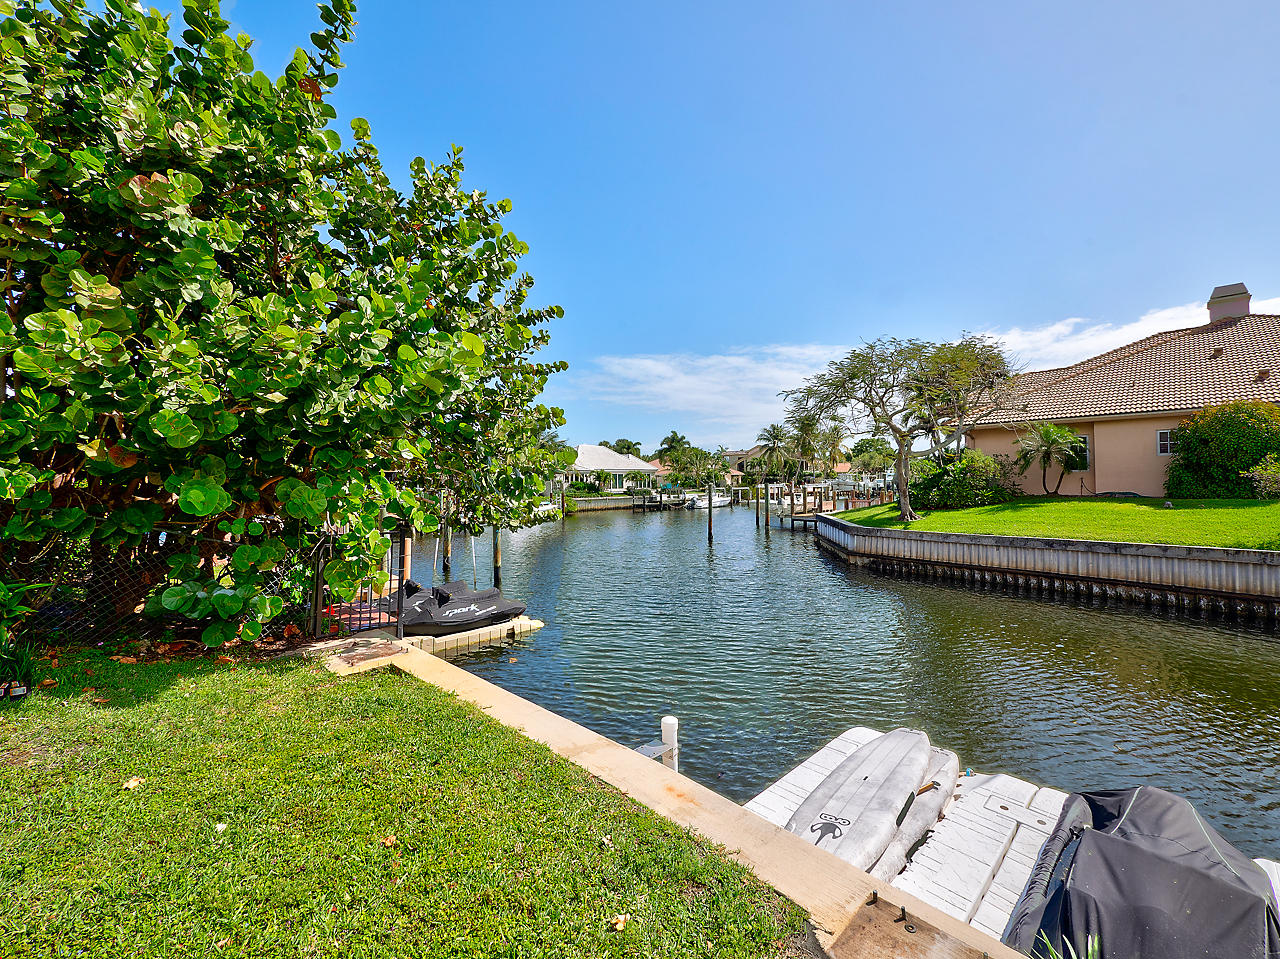 BAY VILLAGE PALM BEACH GARDENS REAL ESTATE